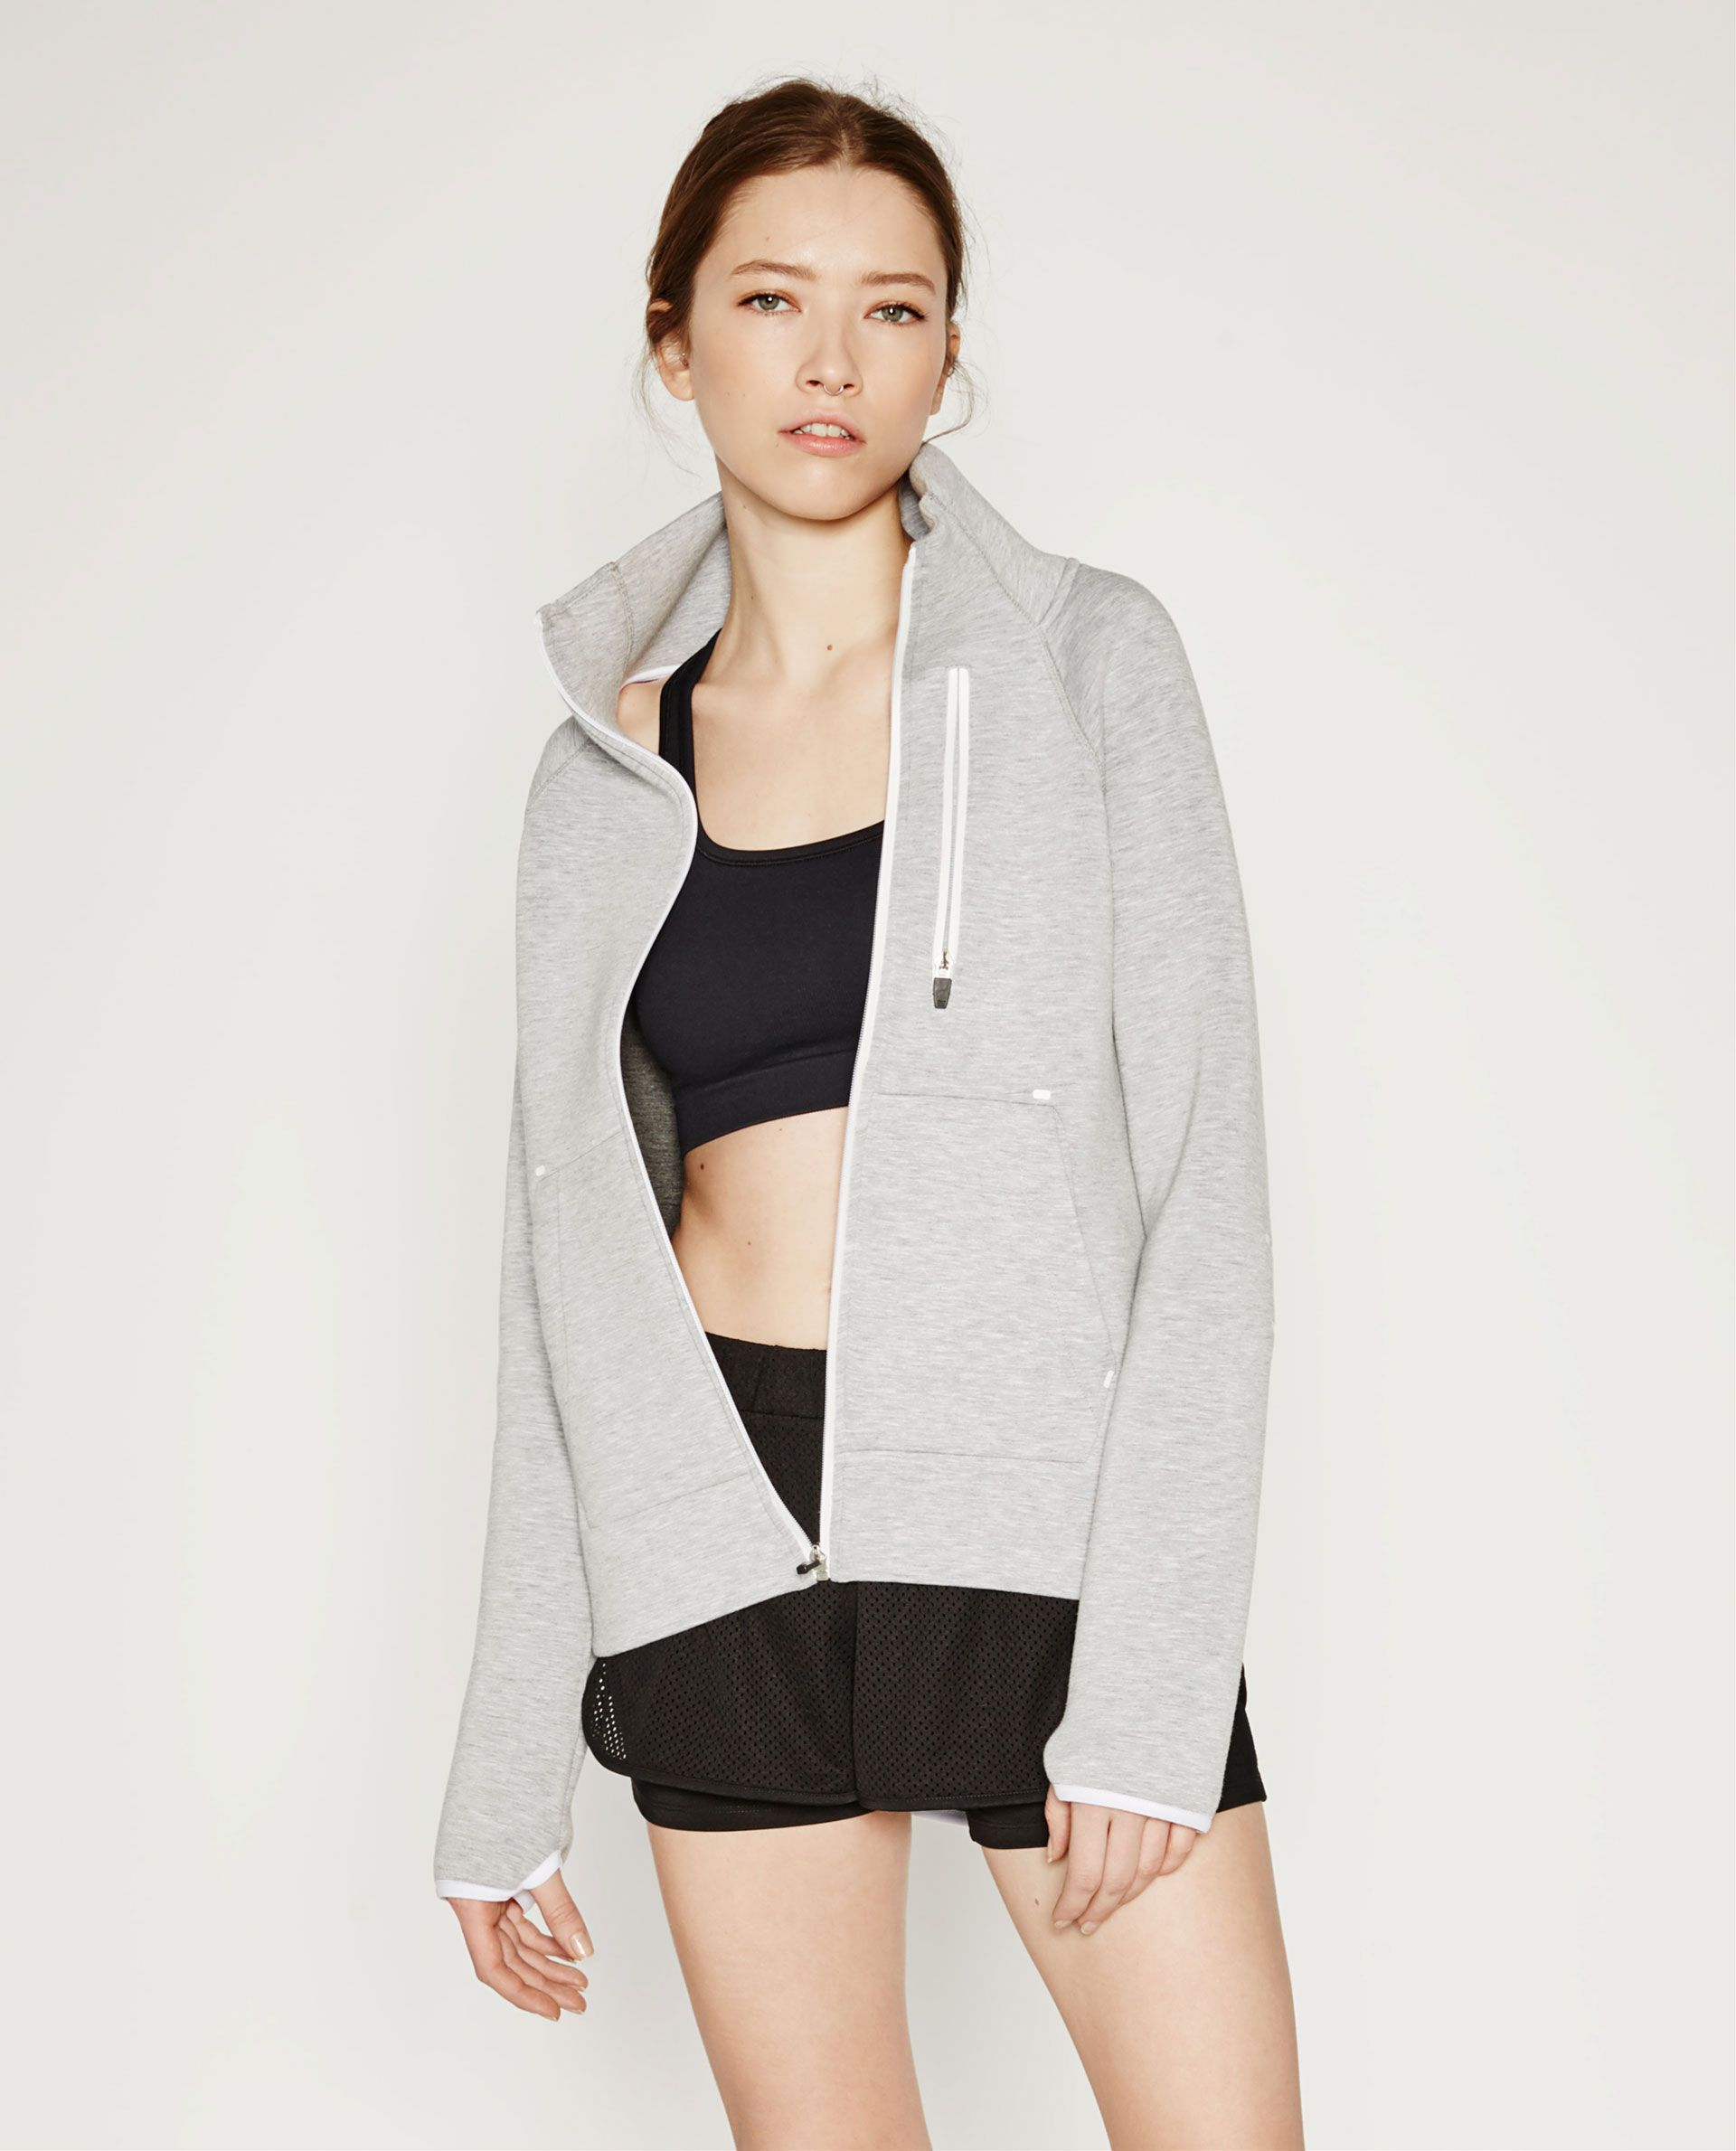 42b5d09cafd99 Zara are now making activewear and it's seriously nice